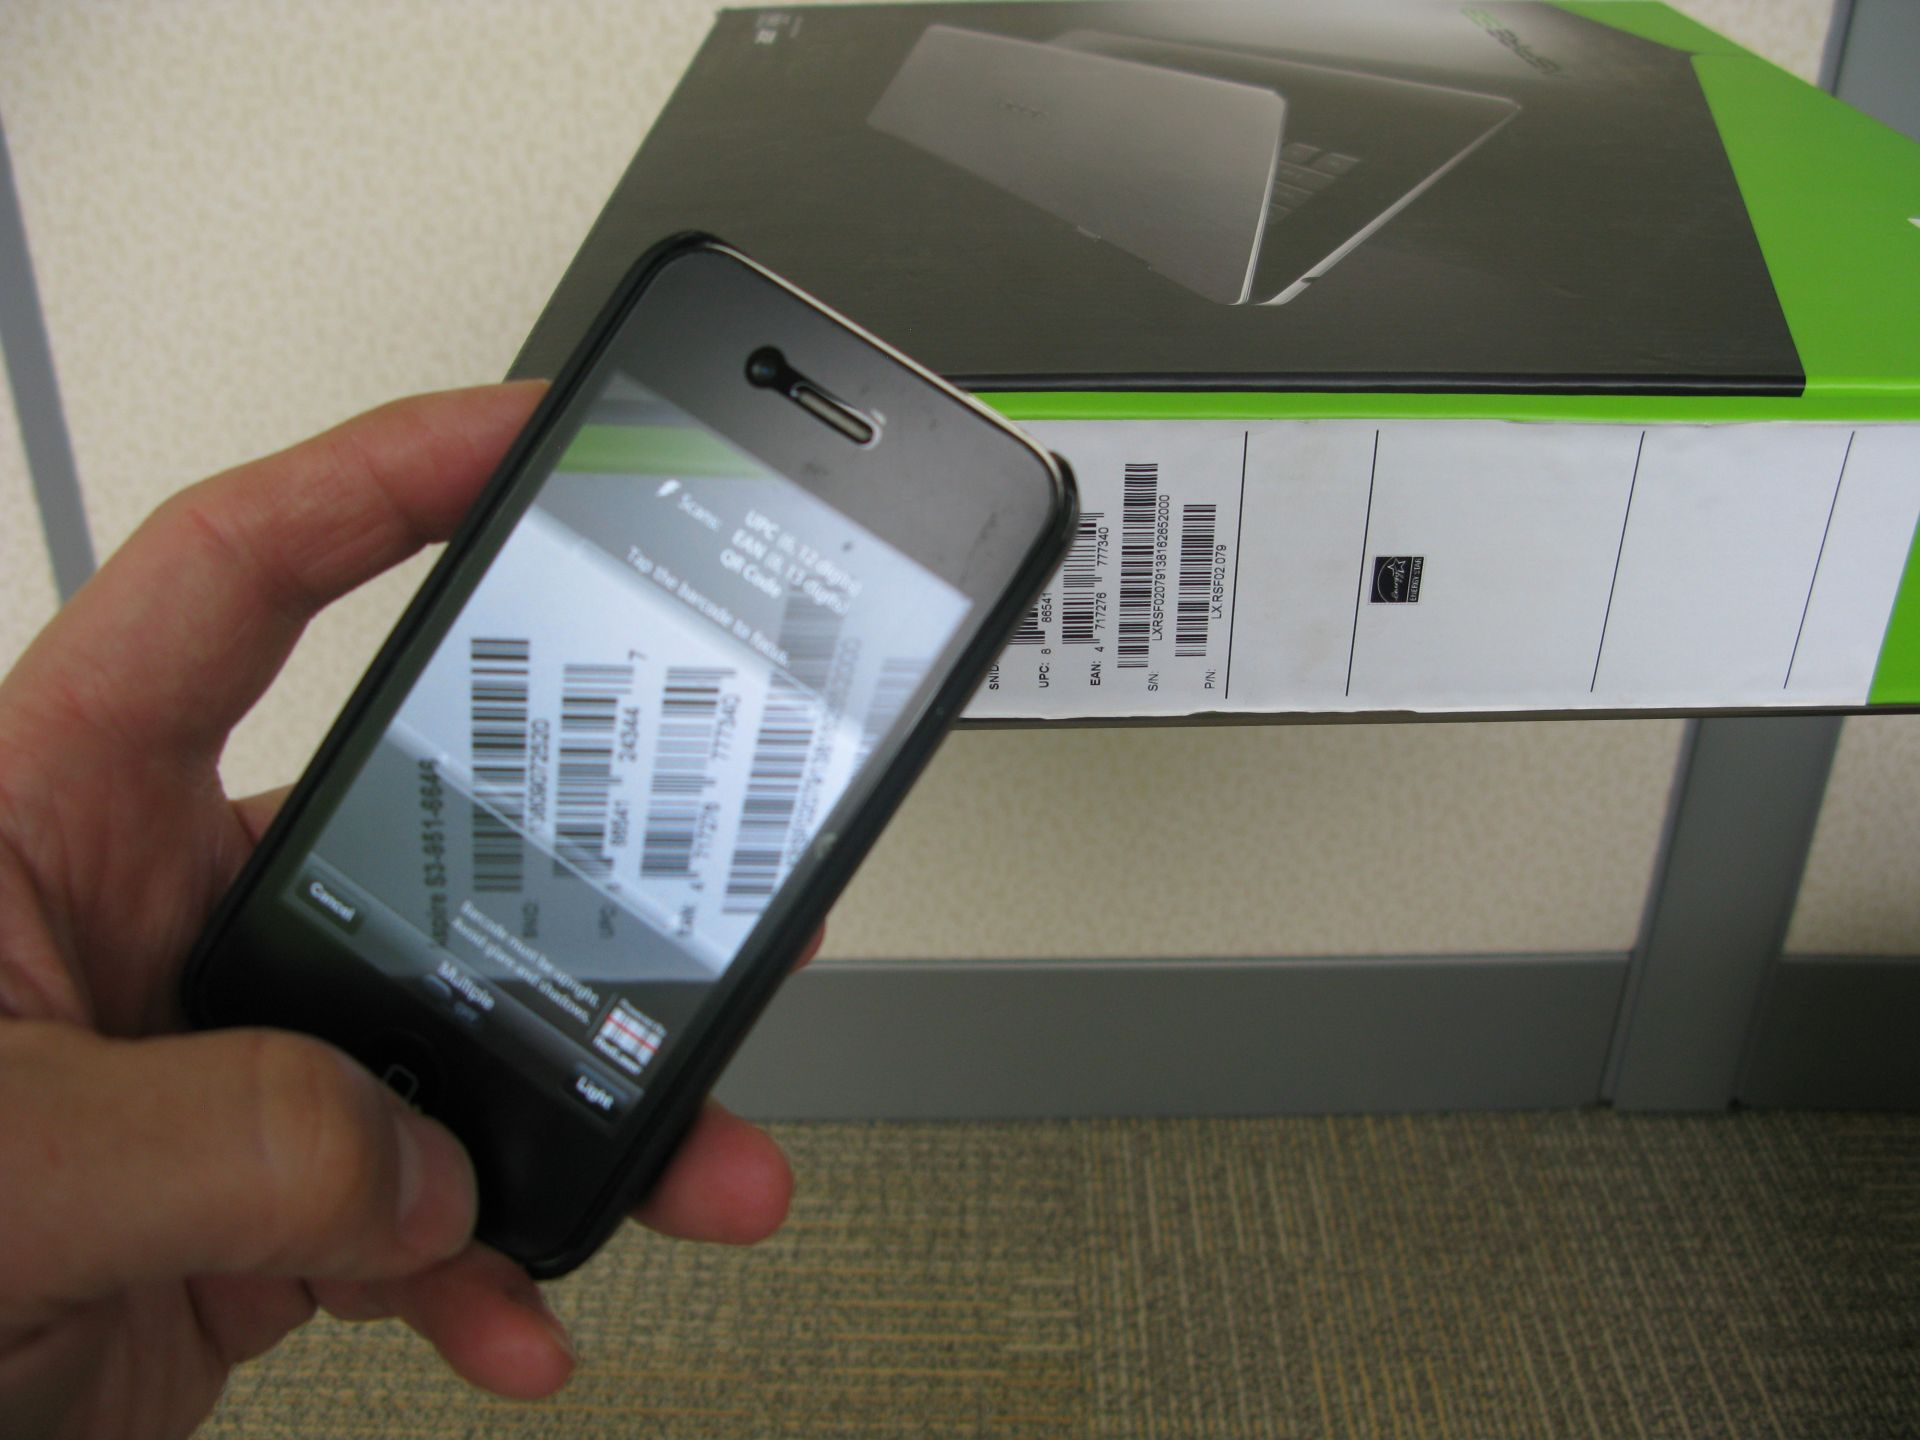 Will Smartphones Replace Enterprise Grade Devices as Barcode